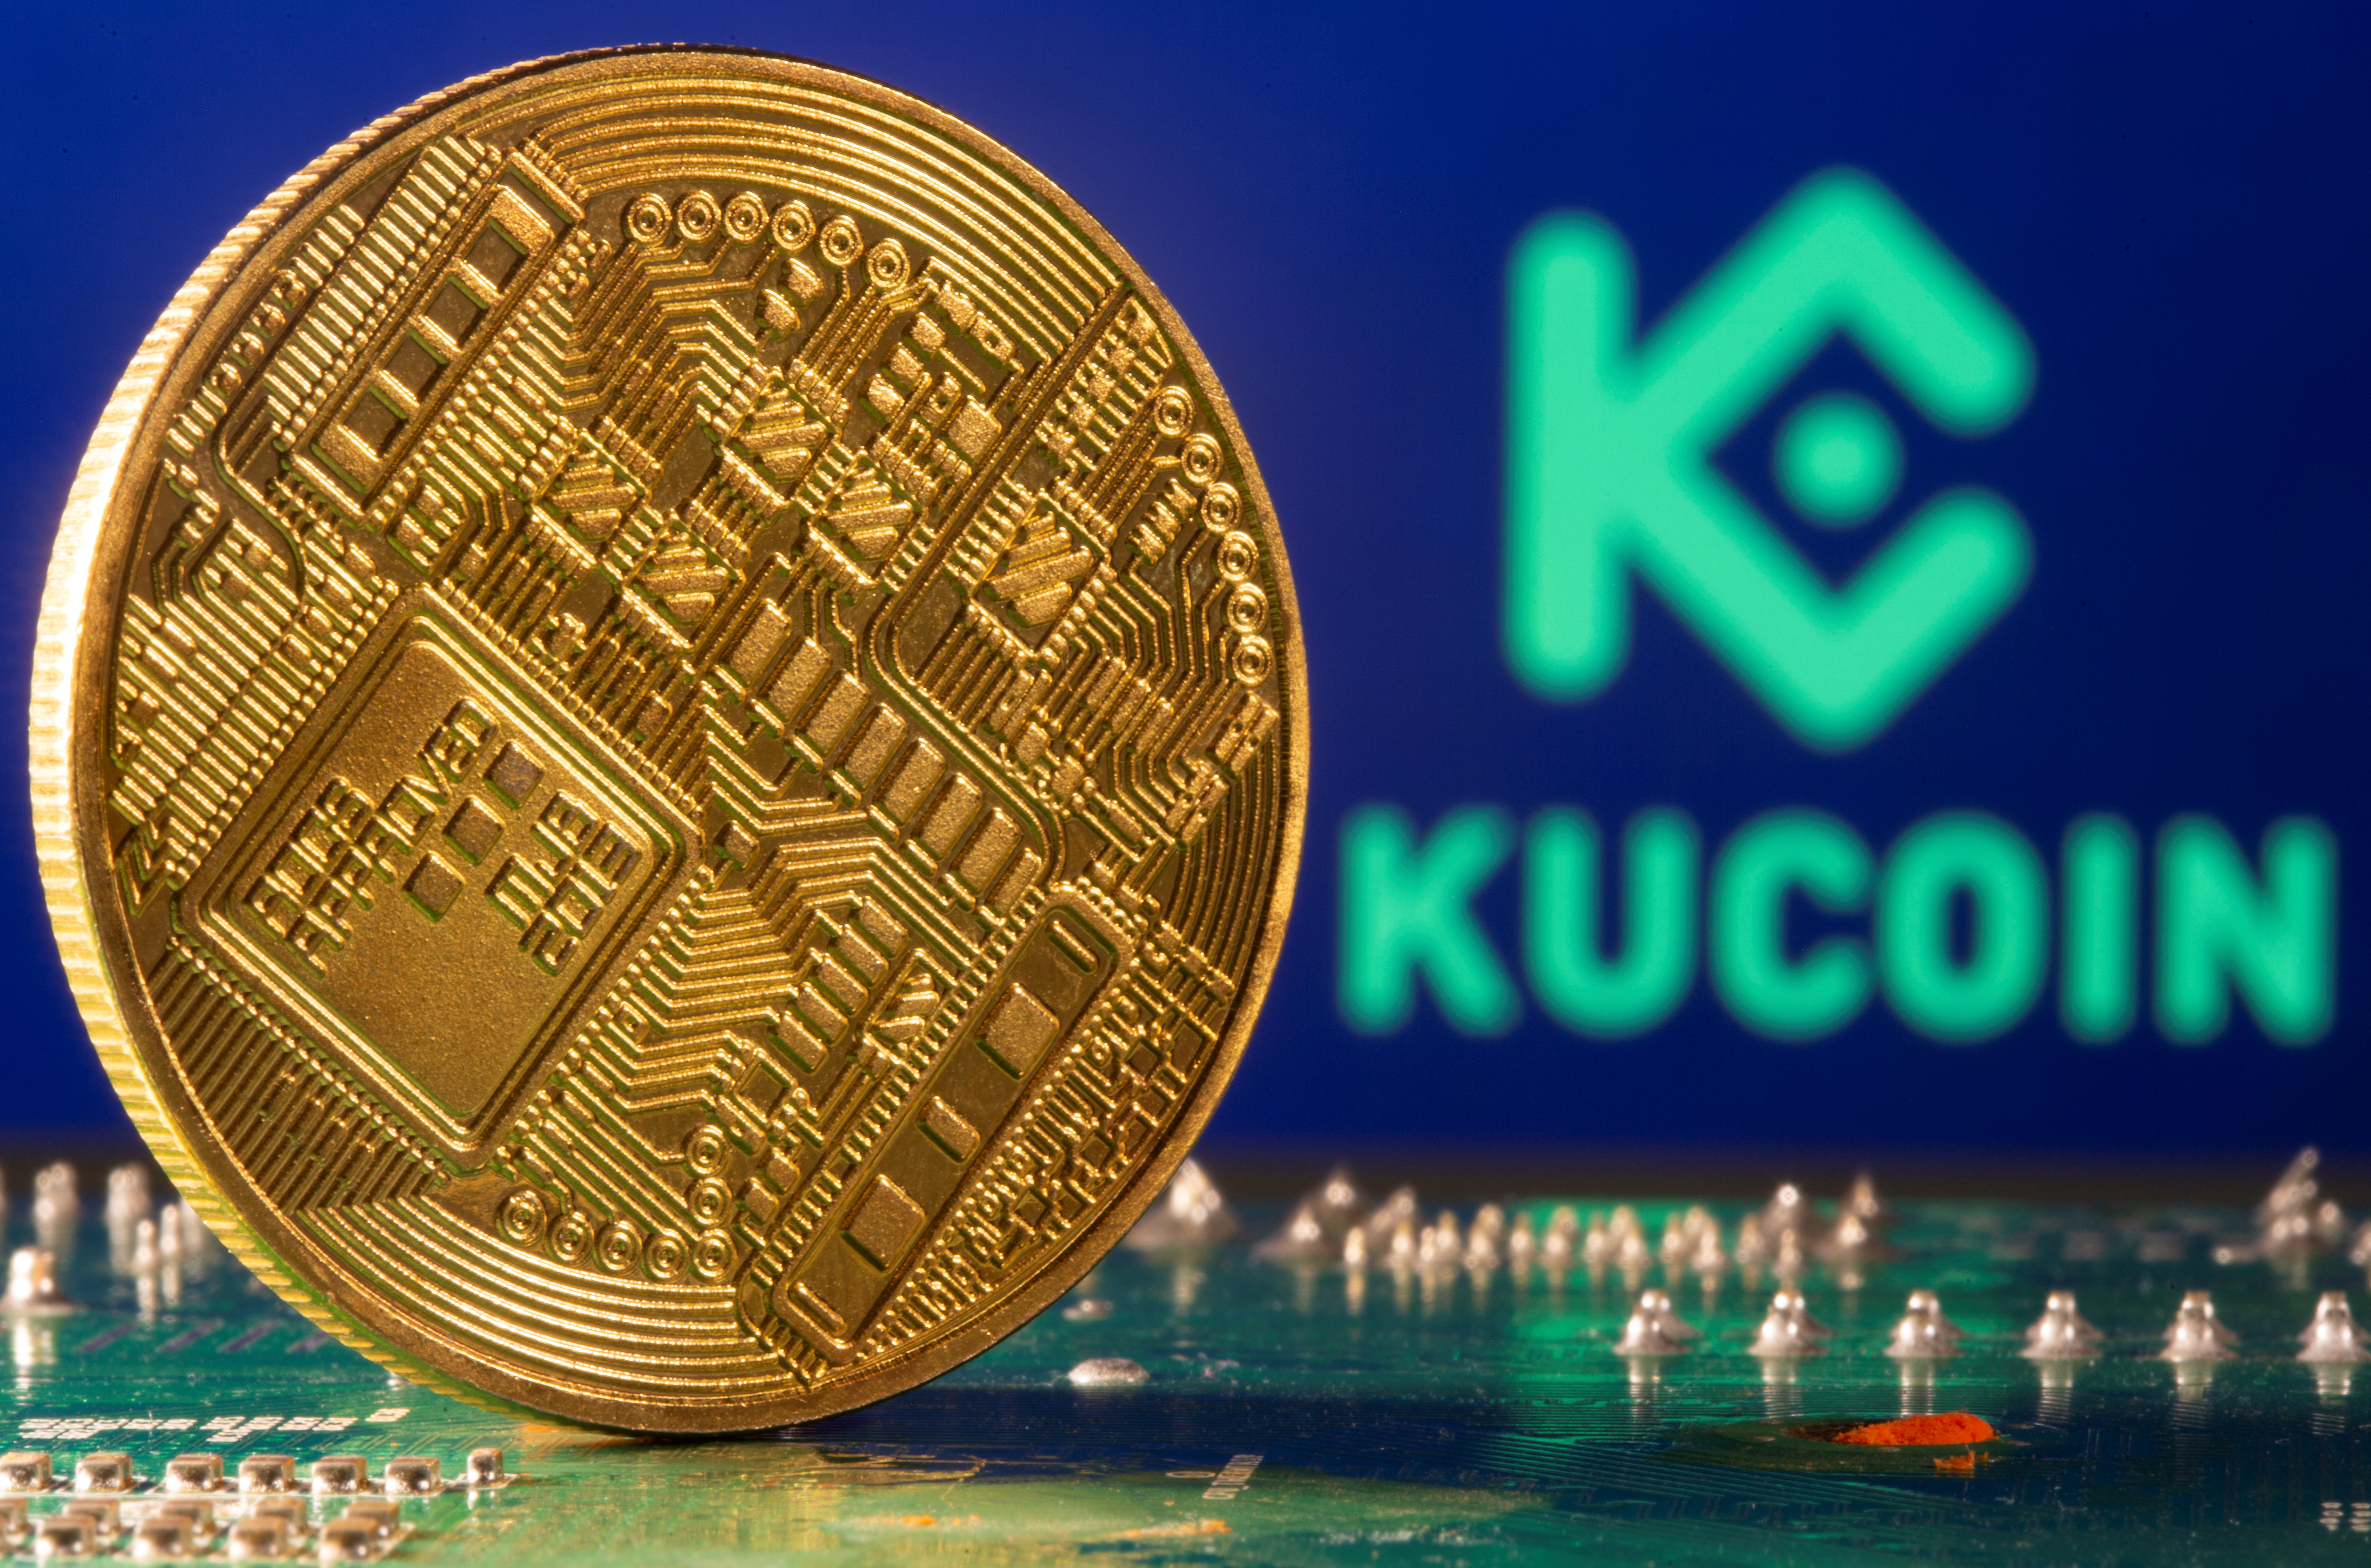 Representation of cryptocurrency is seen in front of a Kucoin logo in this illustration taken on February 9, 2021. REUTERS/Dado Ruvic/Illustration